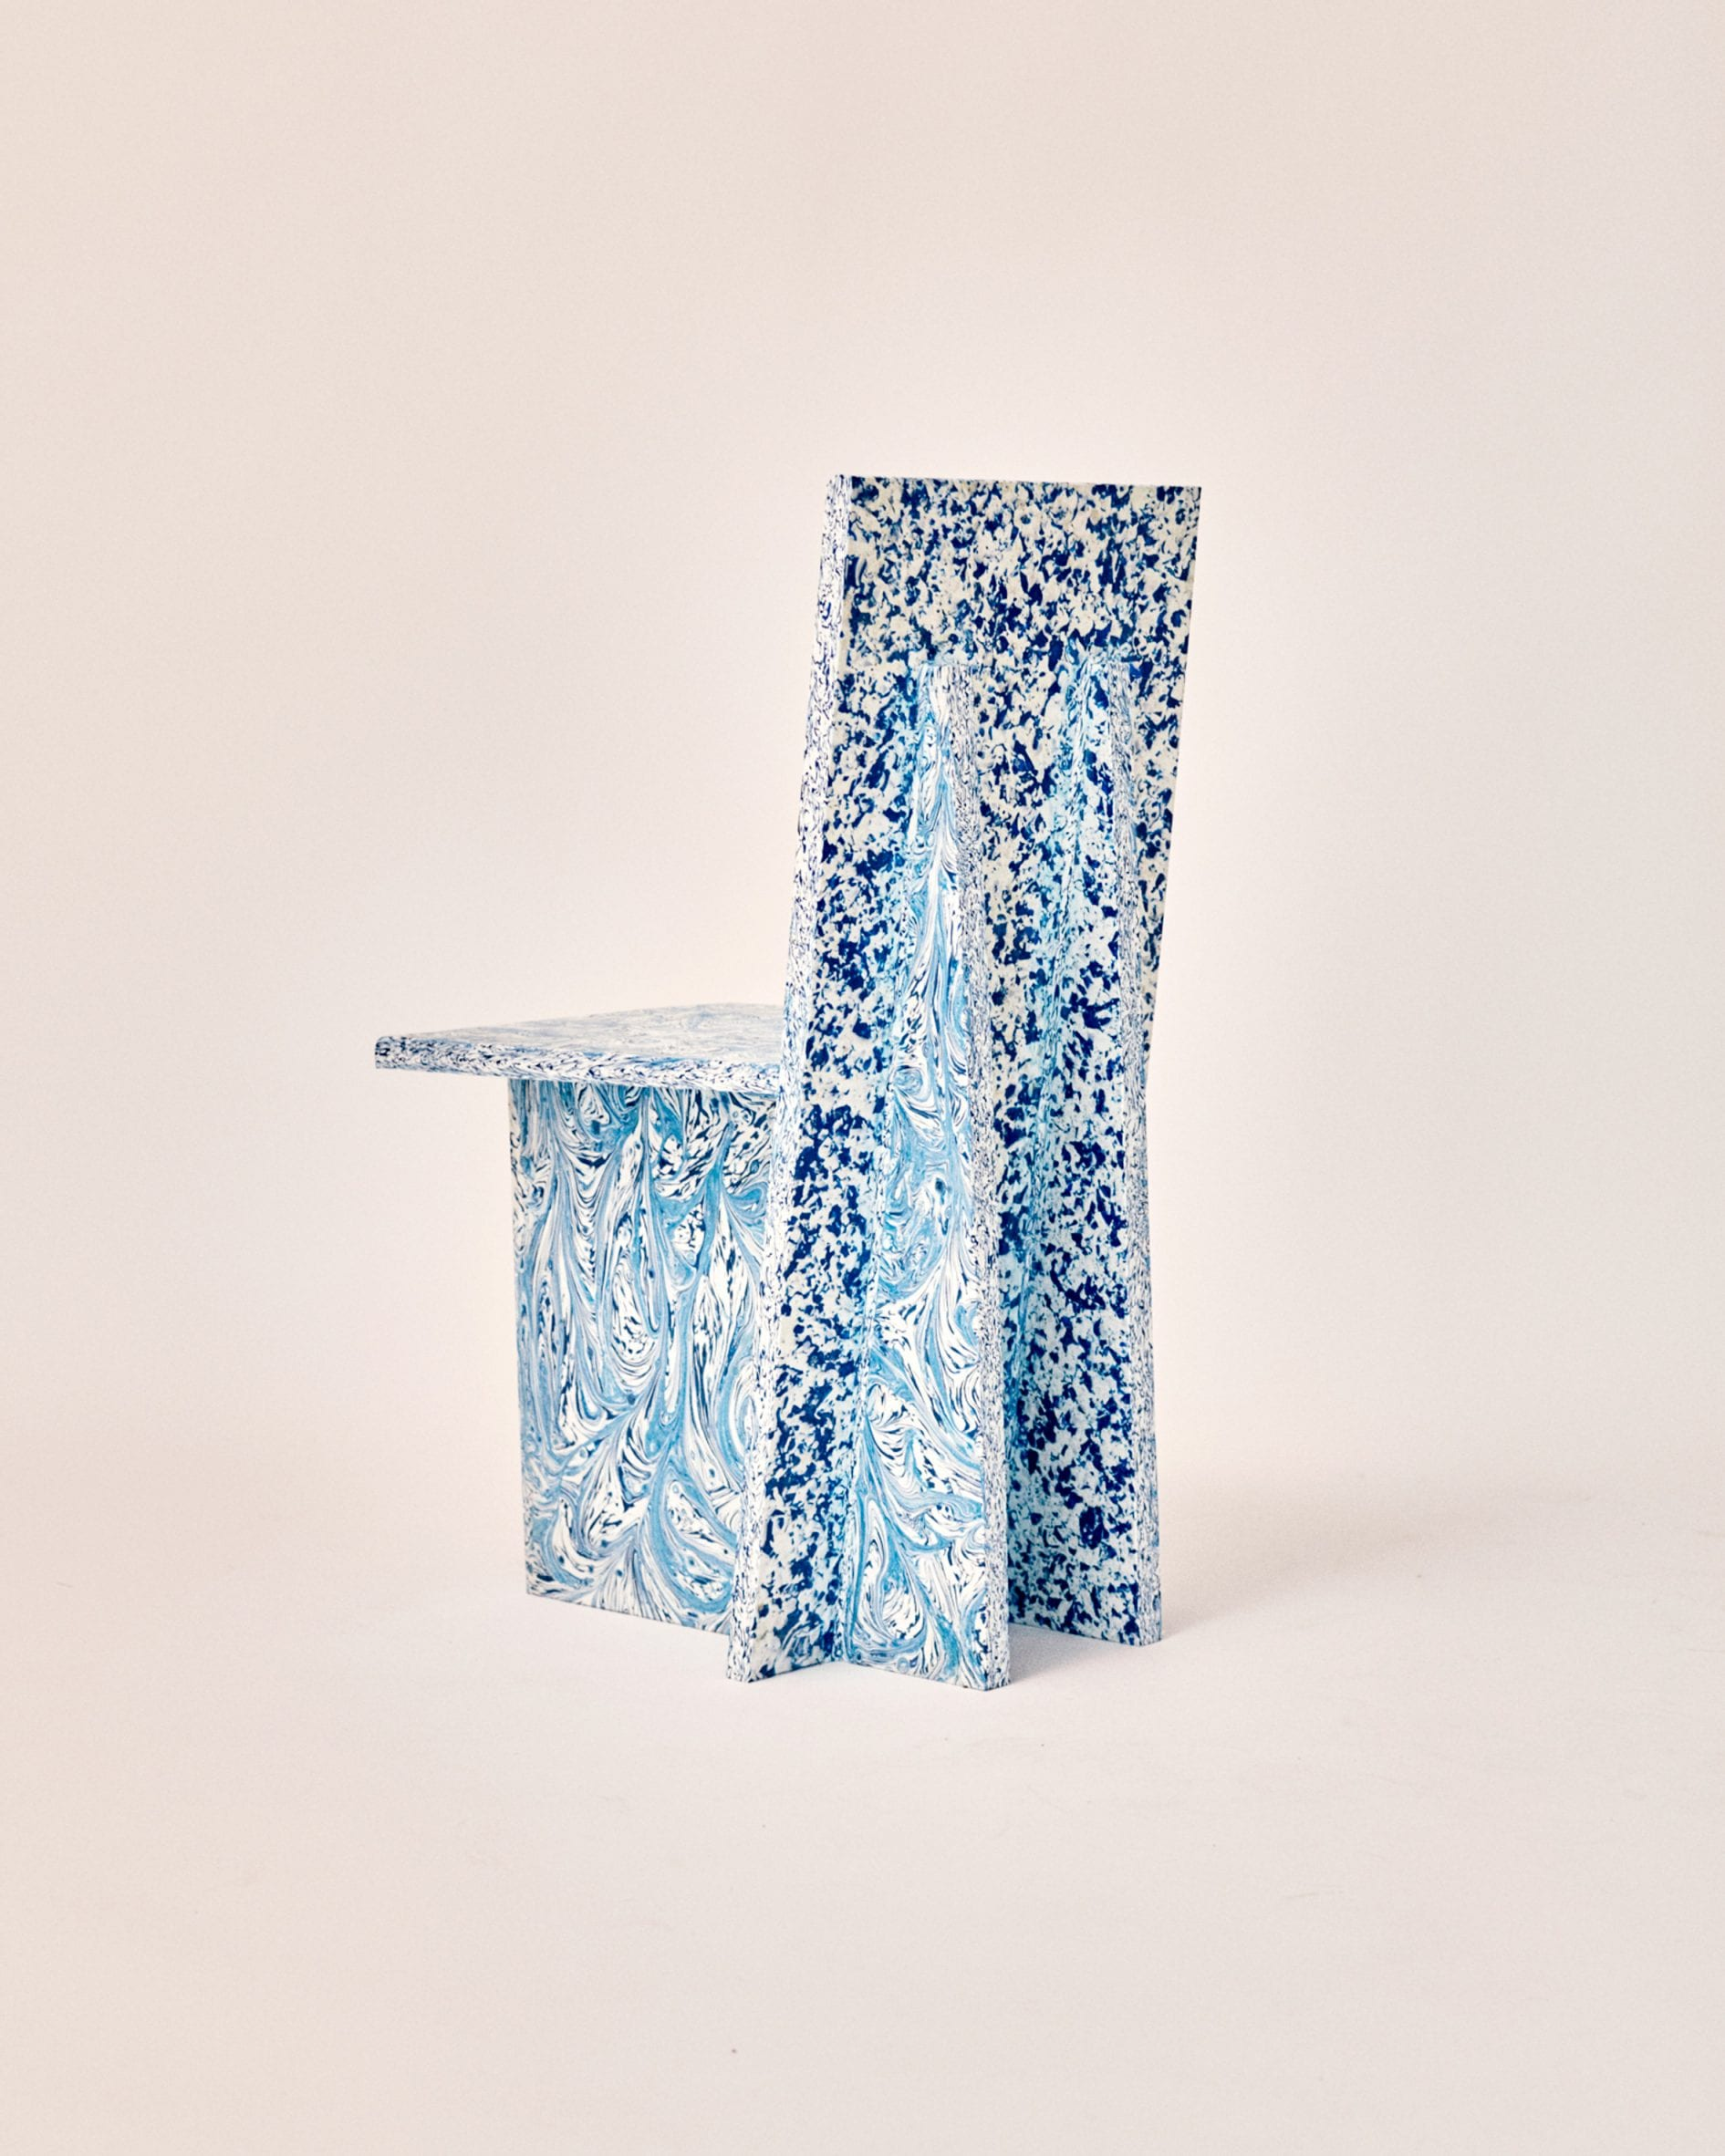 Back blue and white chair with speckled pattern by Peggy Gou and Space Available